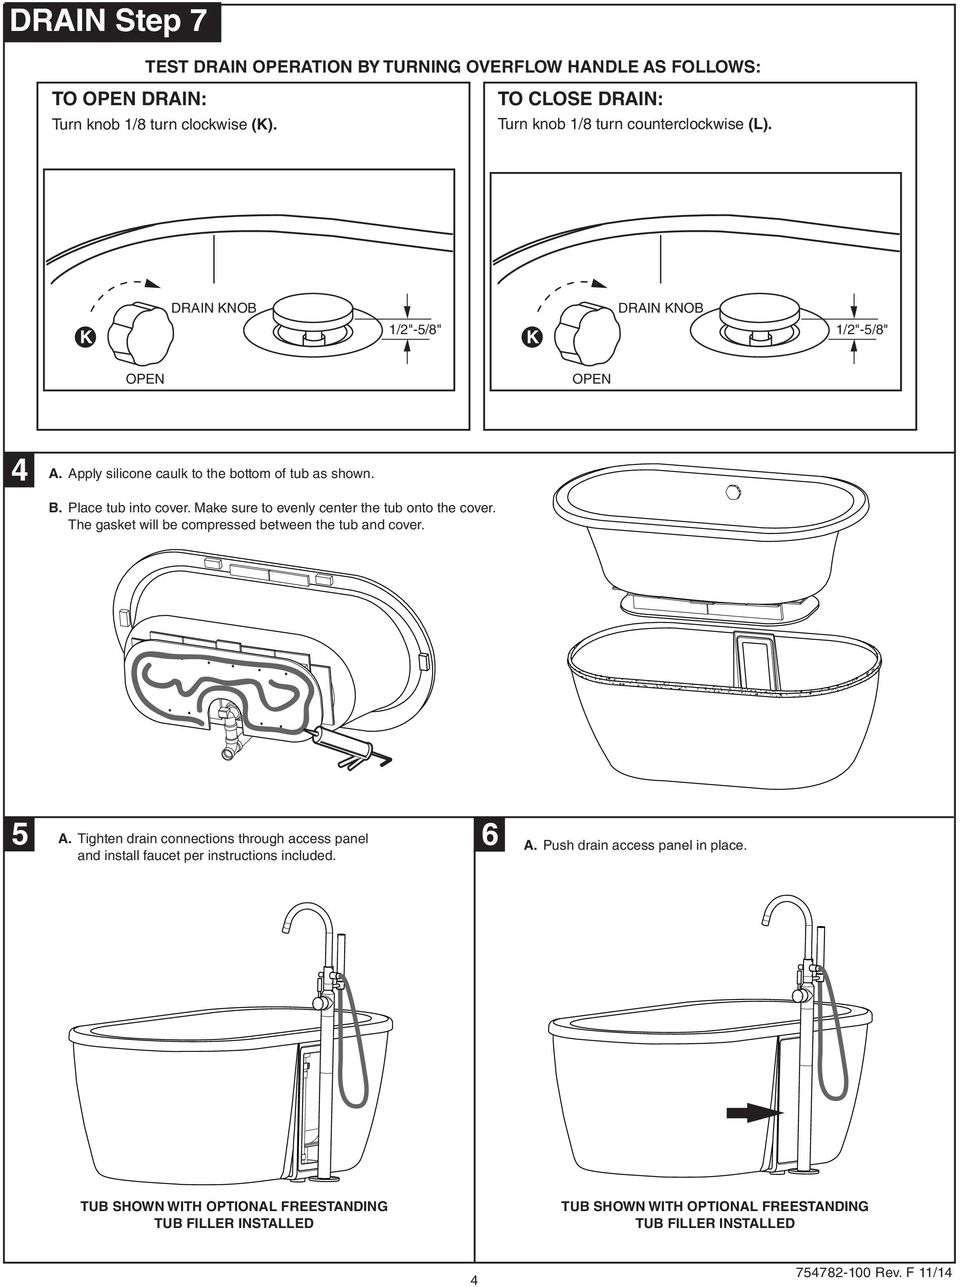 Place tub into cover. Make sure to evenly center the tub onto the cover. The gasket will be compressed between the tub and cover. 5 A.